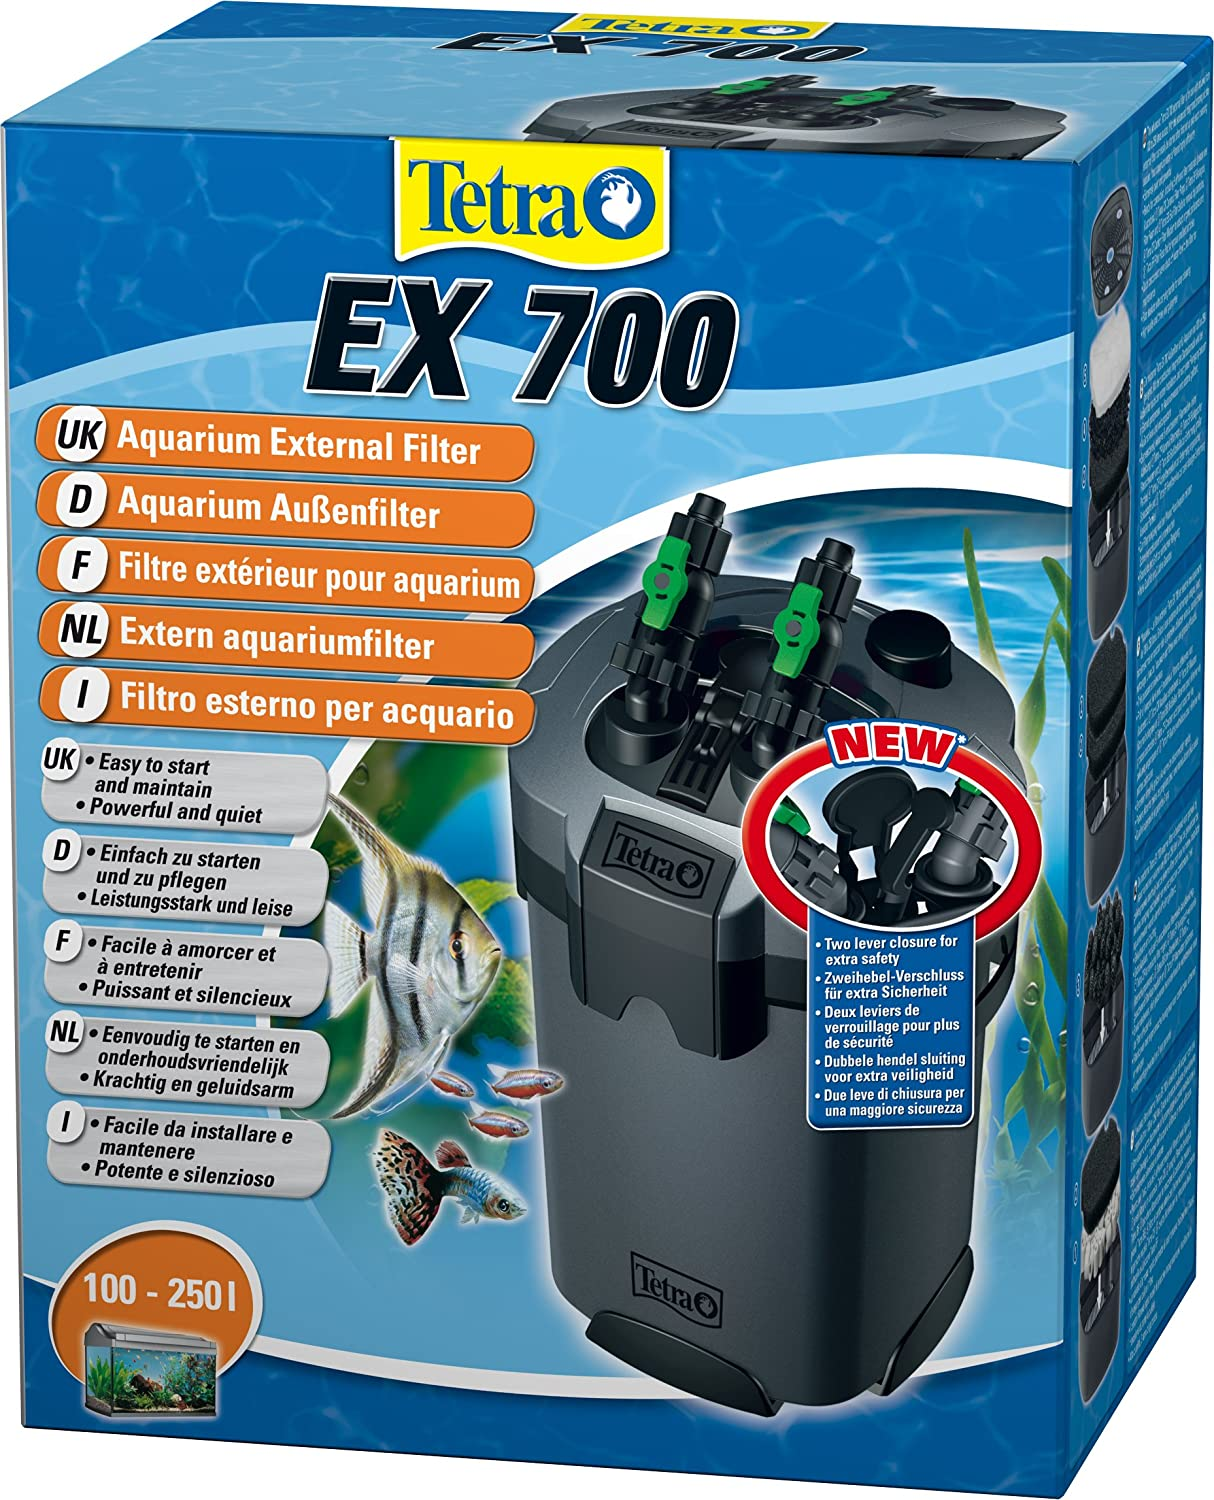 91ri1lf9JjL._SL1500_ tetra tec ex 700 external filter amazon co uk pet supplies  at cos-gaming.co